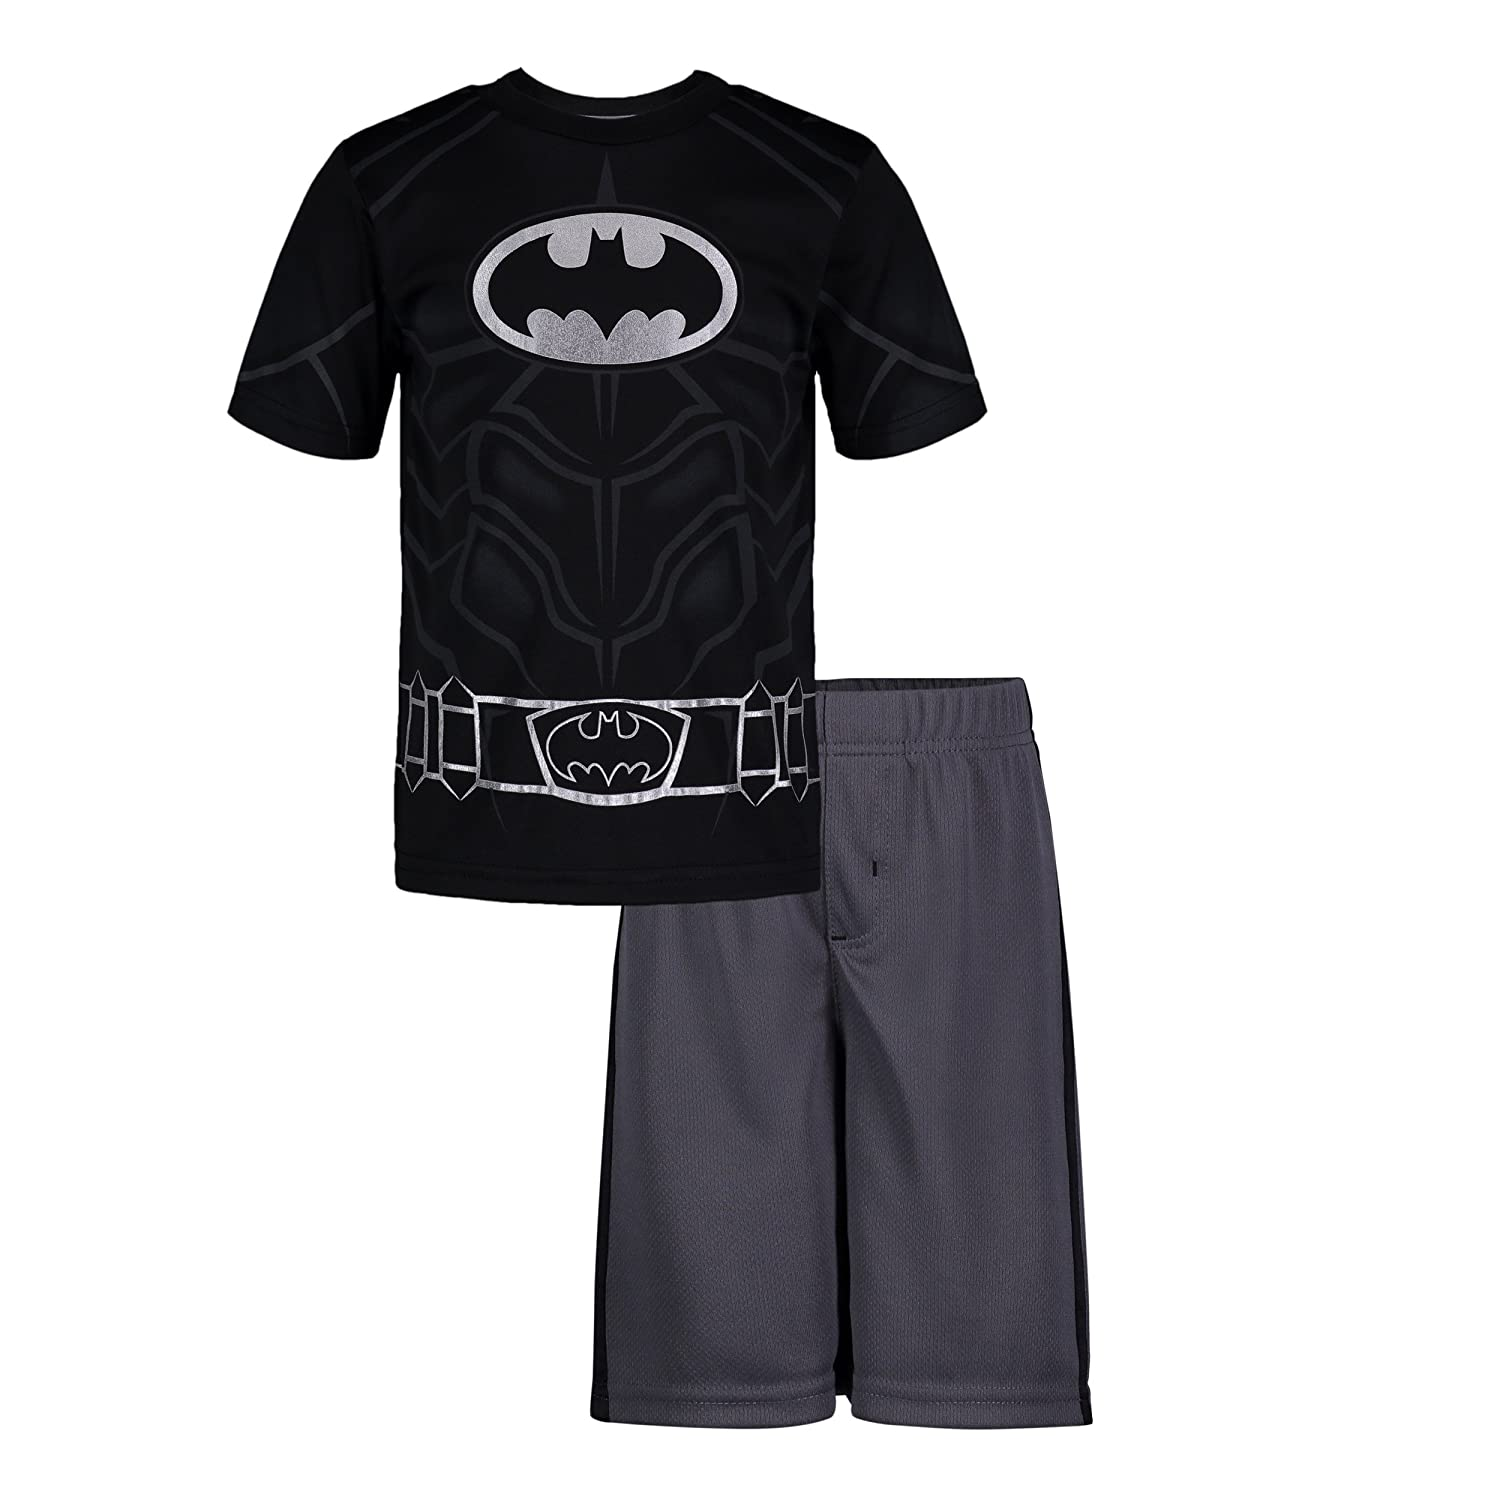 d7ca1f11 T-Shirt: 100% Polyester performance jersey; Shorts: 100% Polyester flatback  mesh. Athletic tee and shorts set featuring DC Comics superheroes Batman and  ...